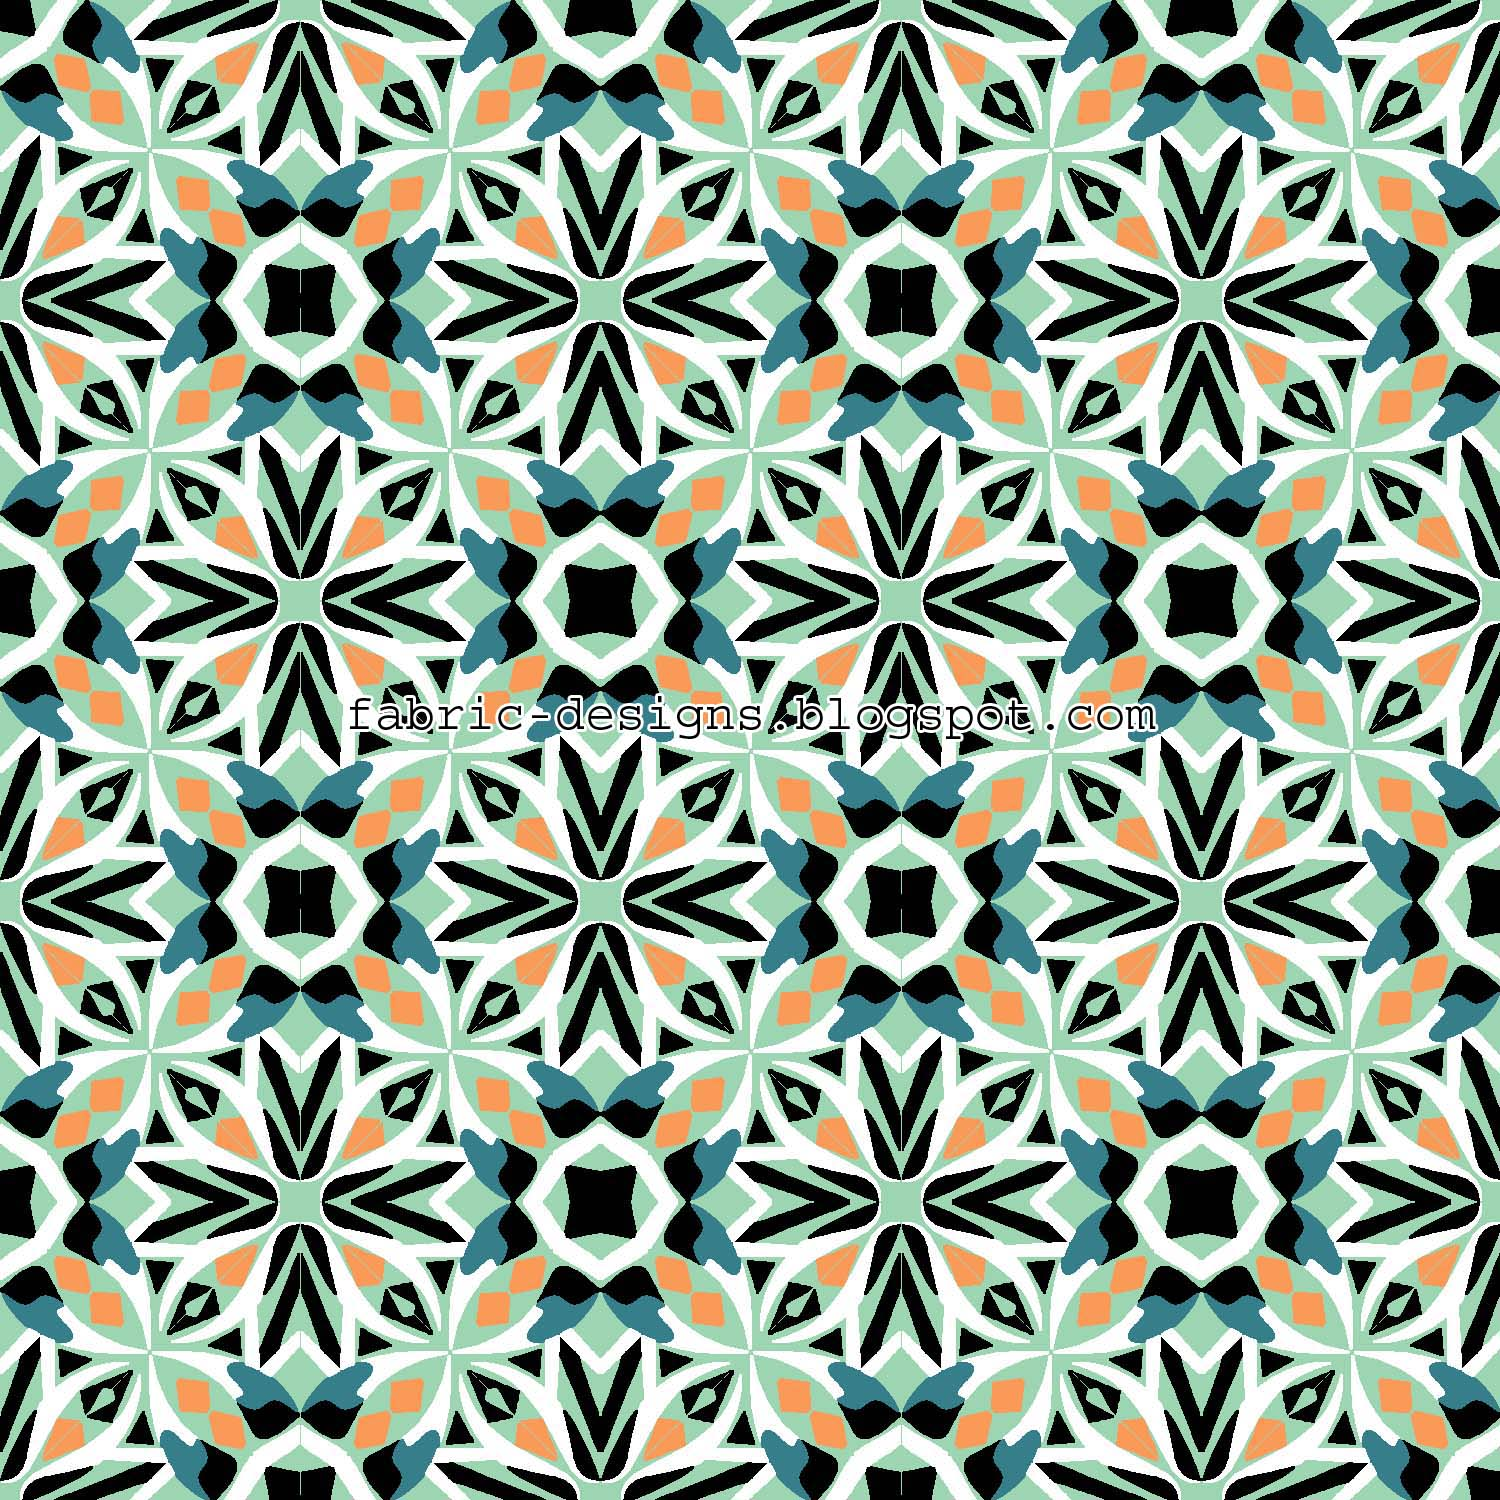 designs patterns - photo #13